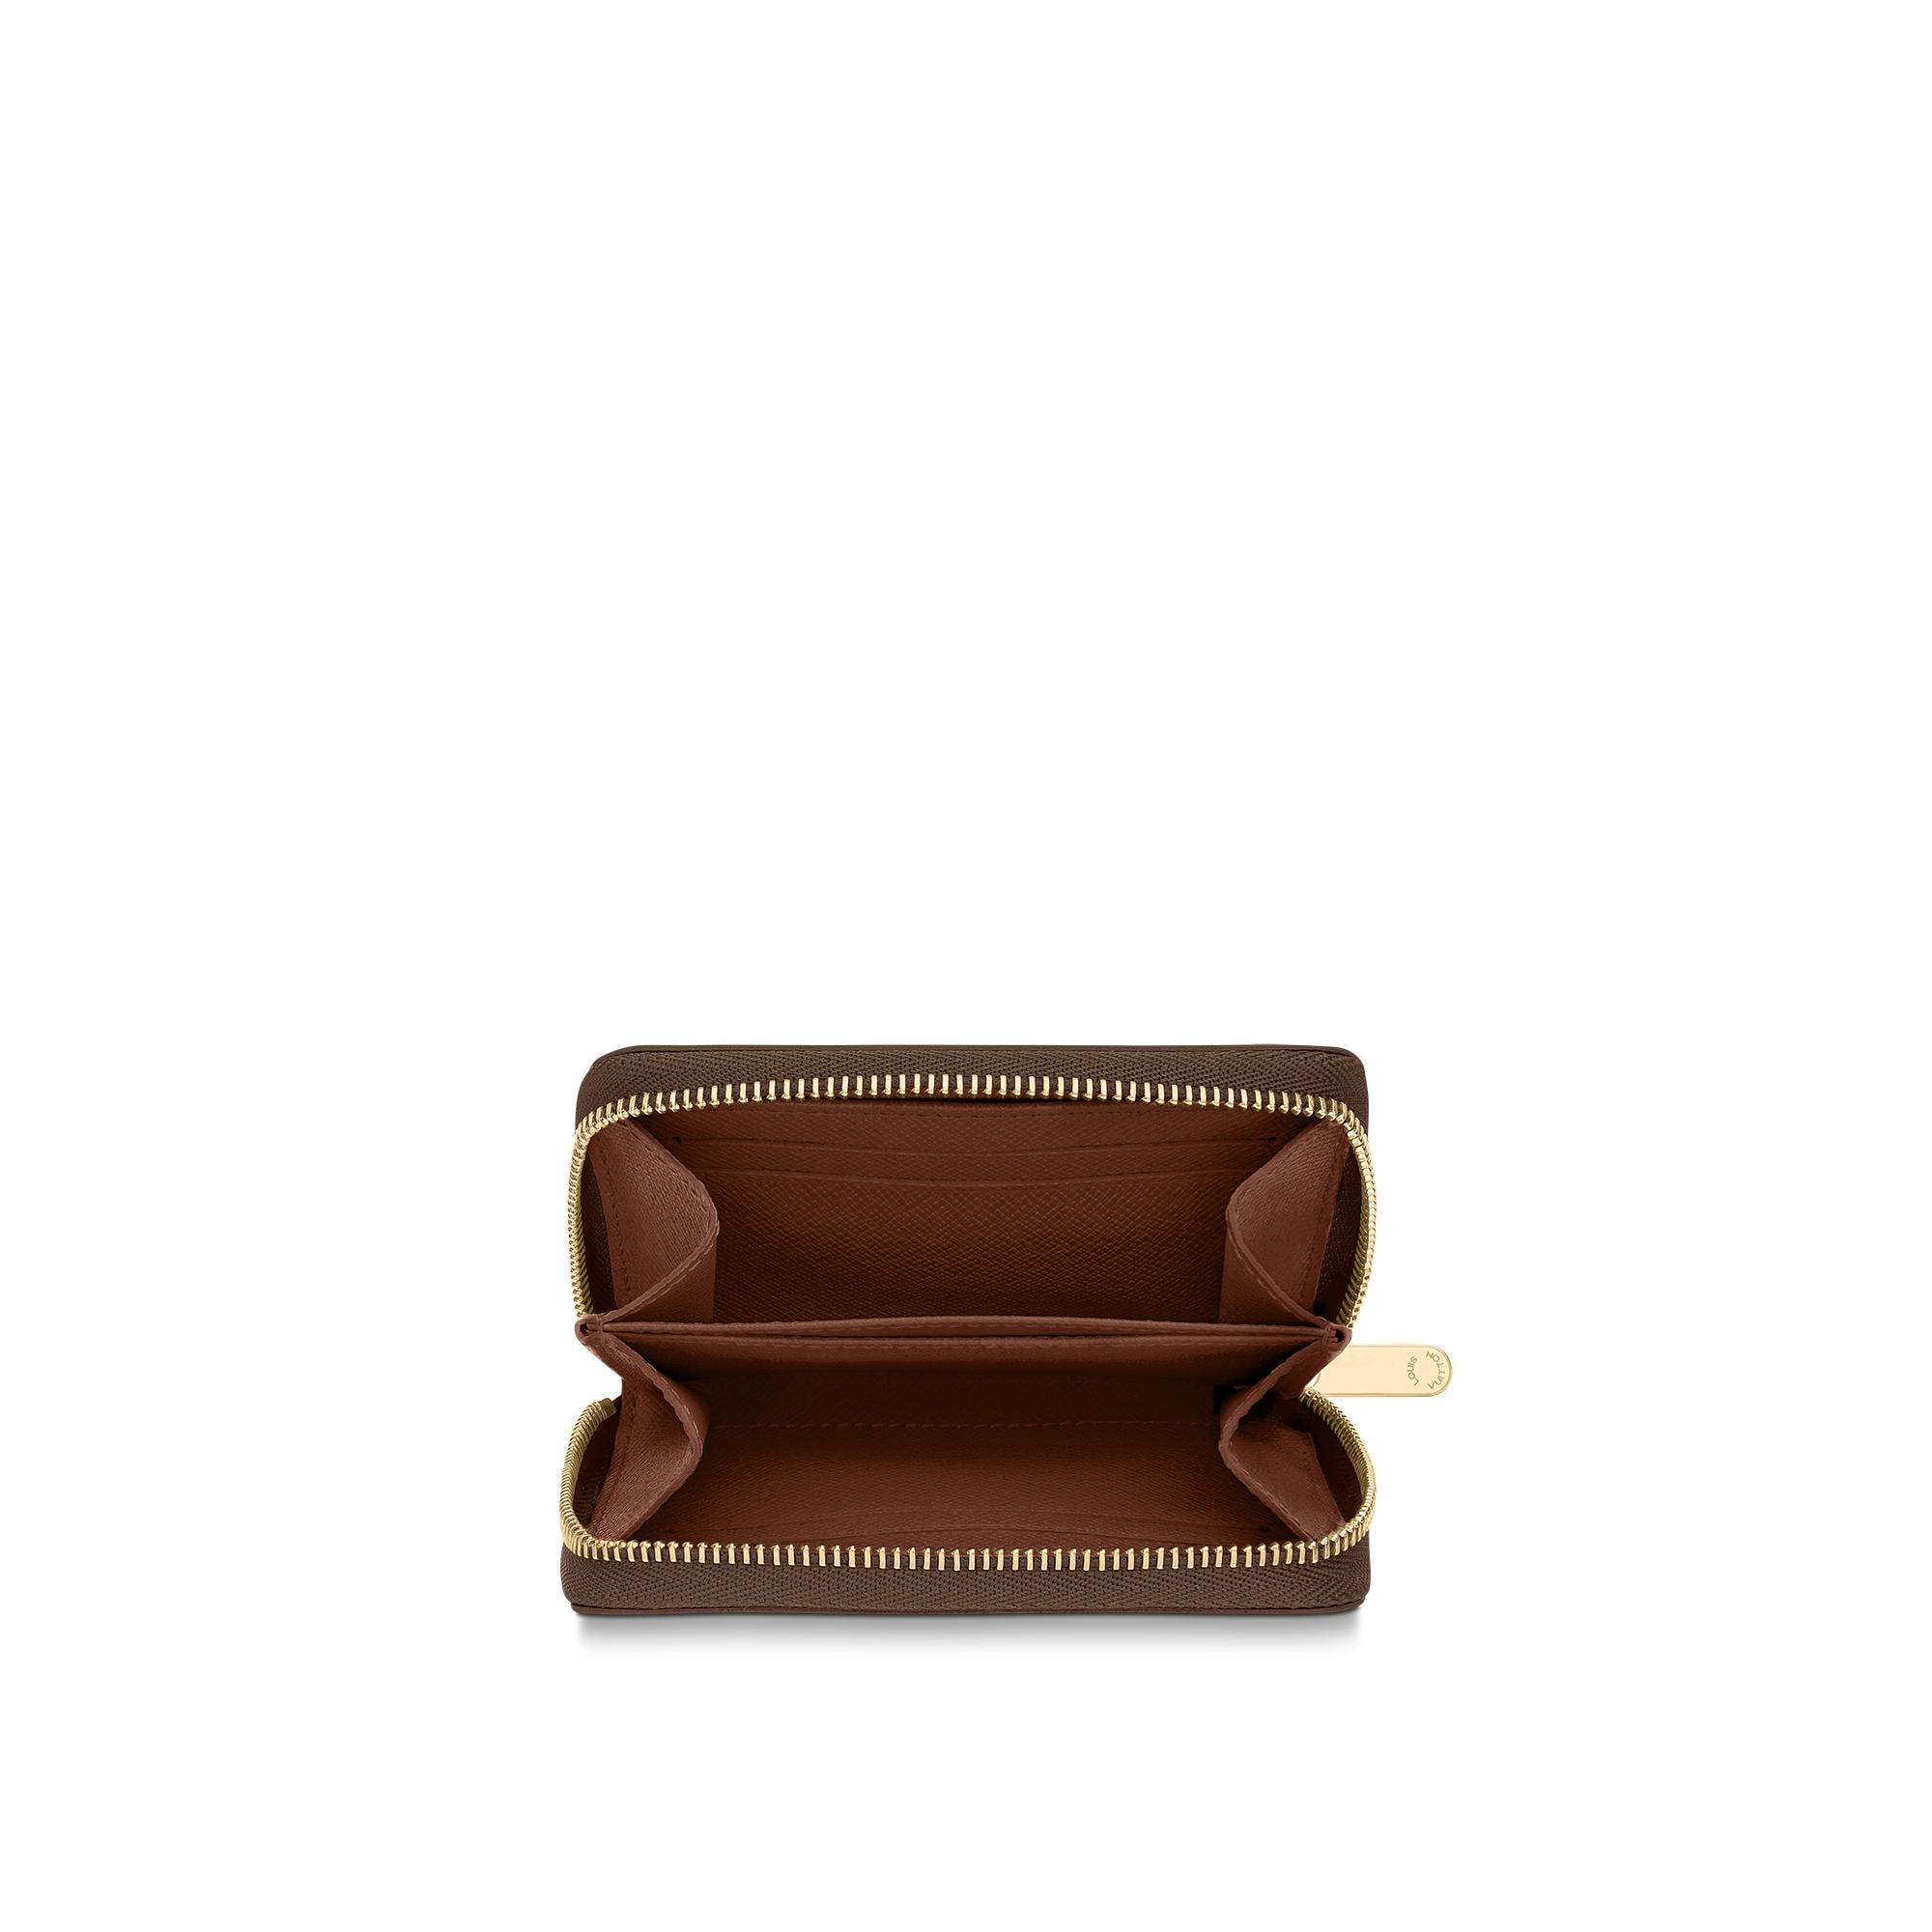 Le Meilleur Zippy Coin Purse Small Leather Goods Louis Vuitton Ce Mois Ci